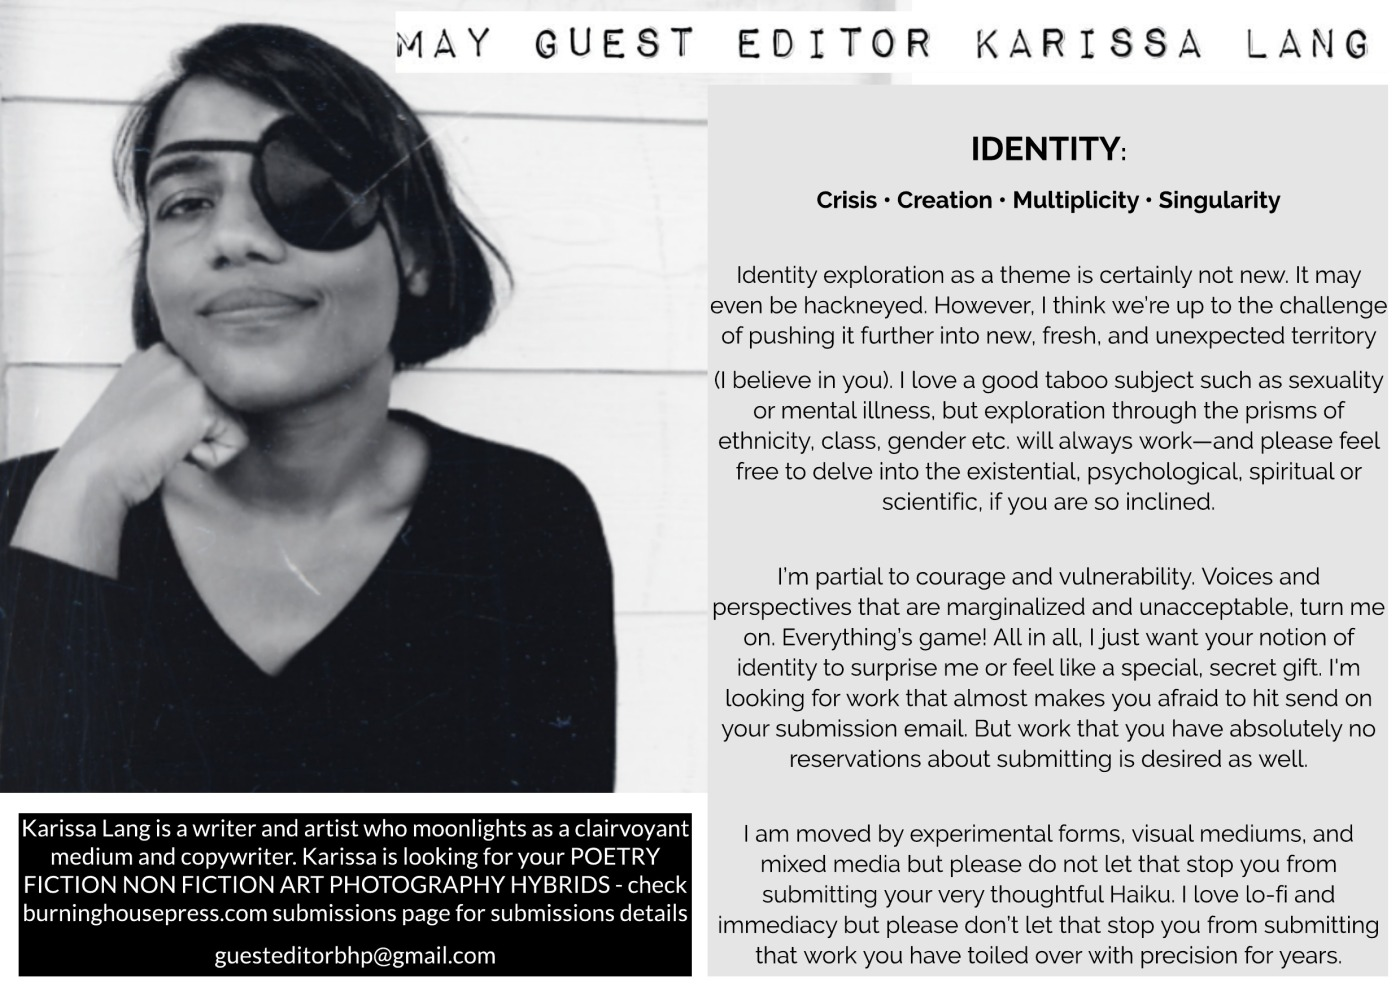 MAY'S GUEST EDITOR FOR BHP ONLINE IS KARISSA LANG